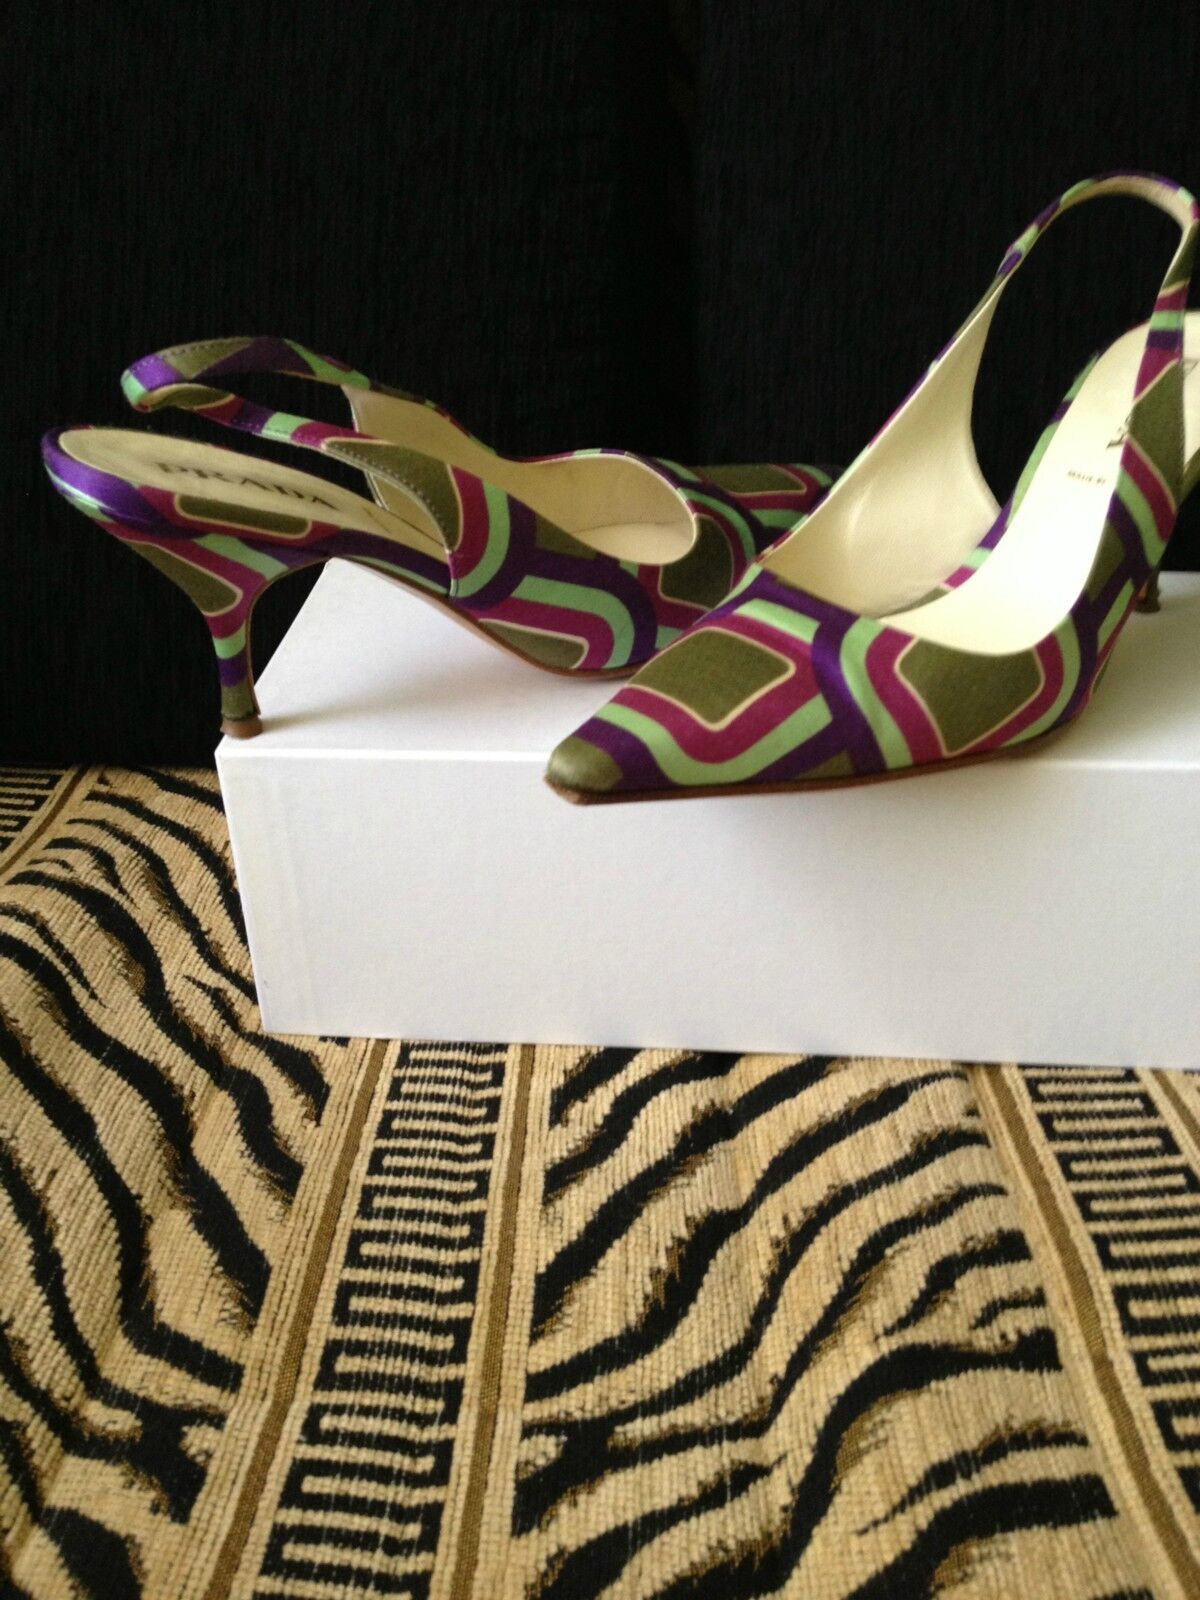 Man/Woman Prada Multicolor Heels, Size 36.5/6.5 wide the most convenient a wide 36.5/6.5 range of products Recommended today 0ef803